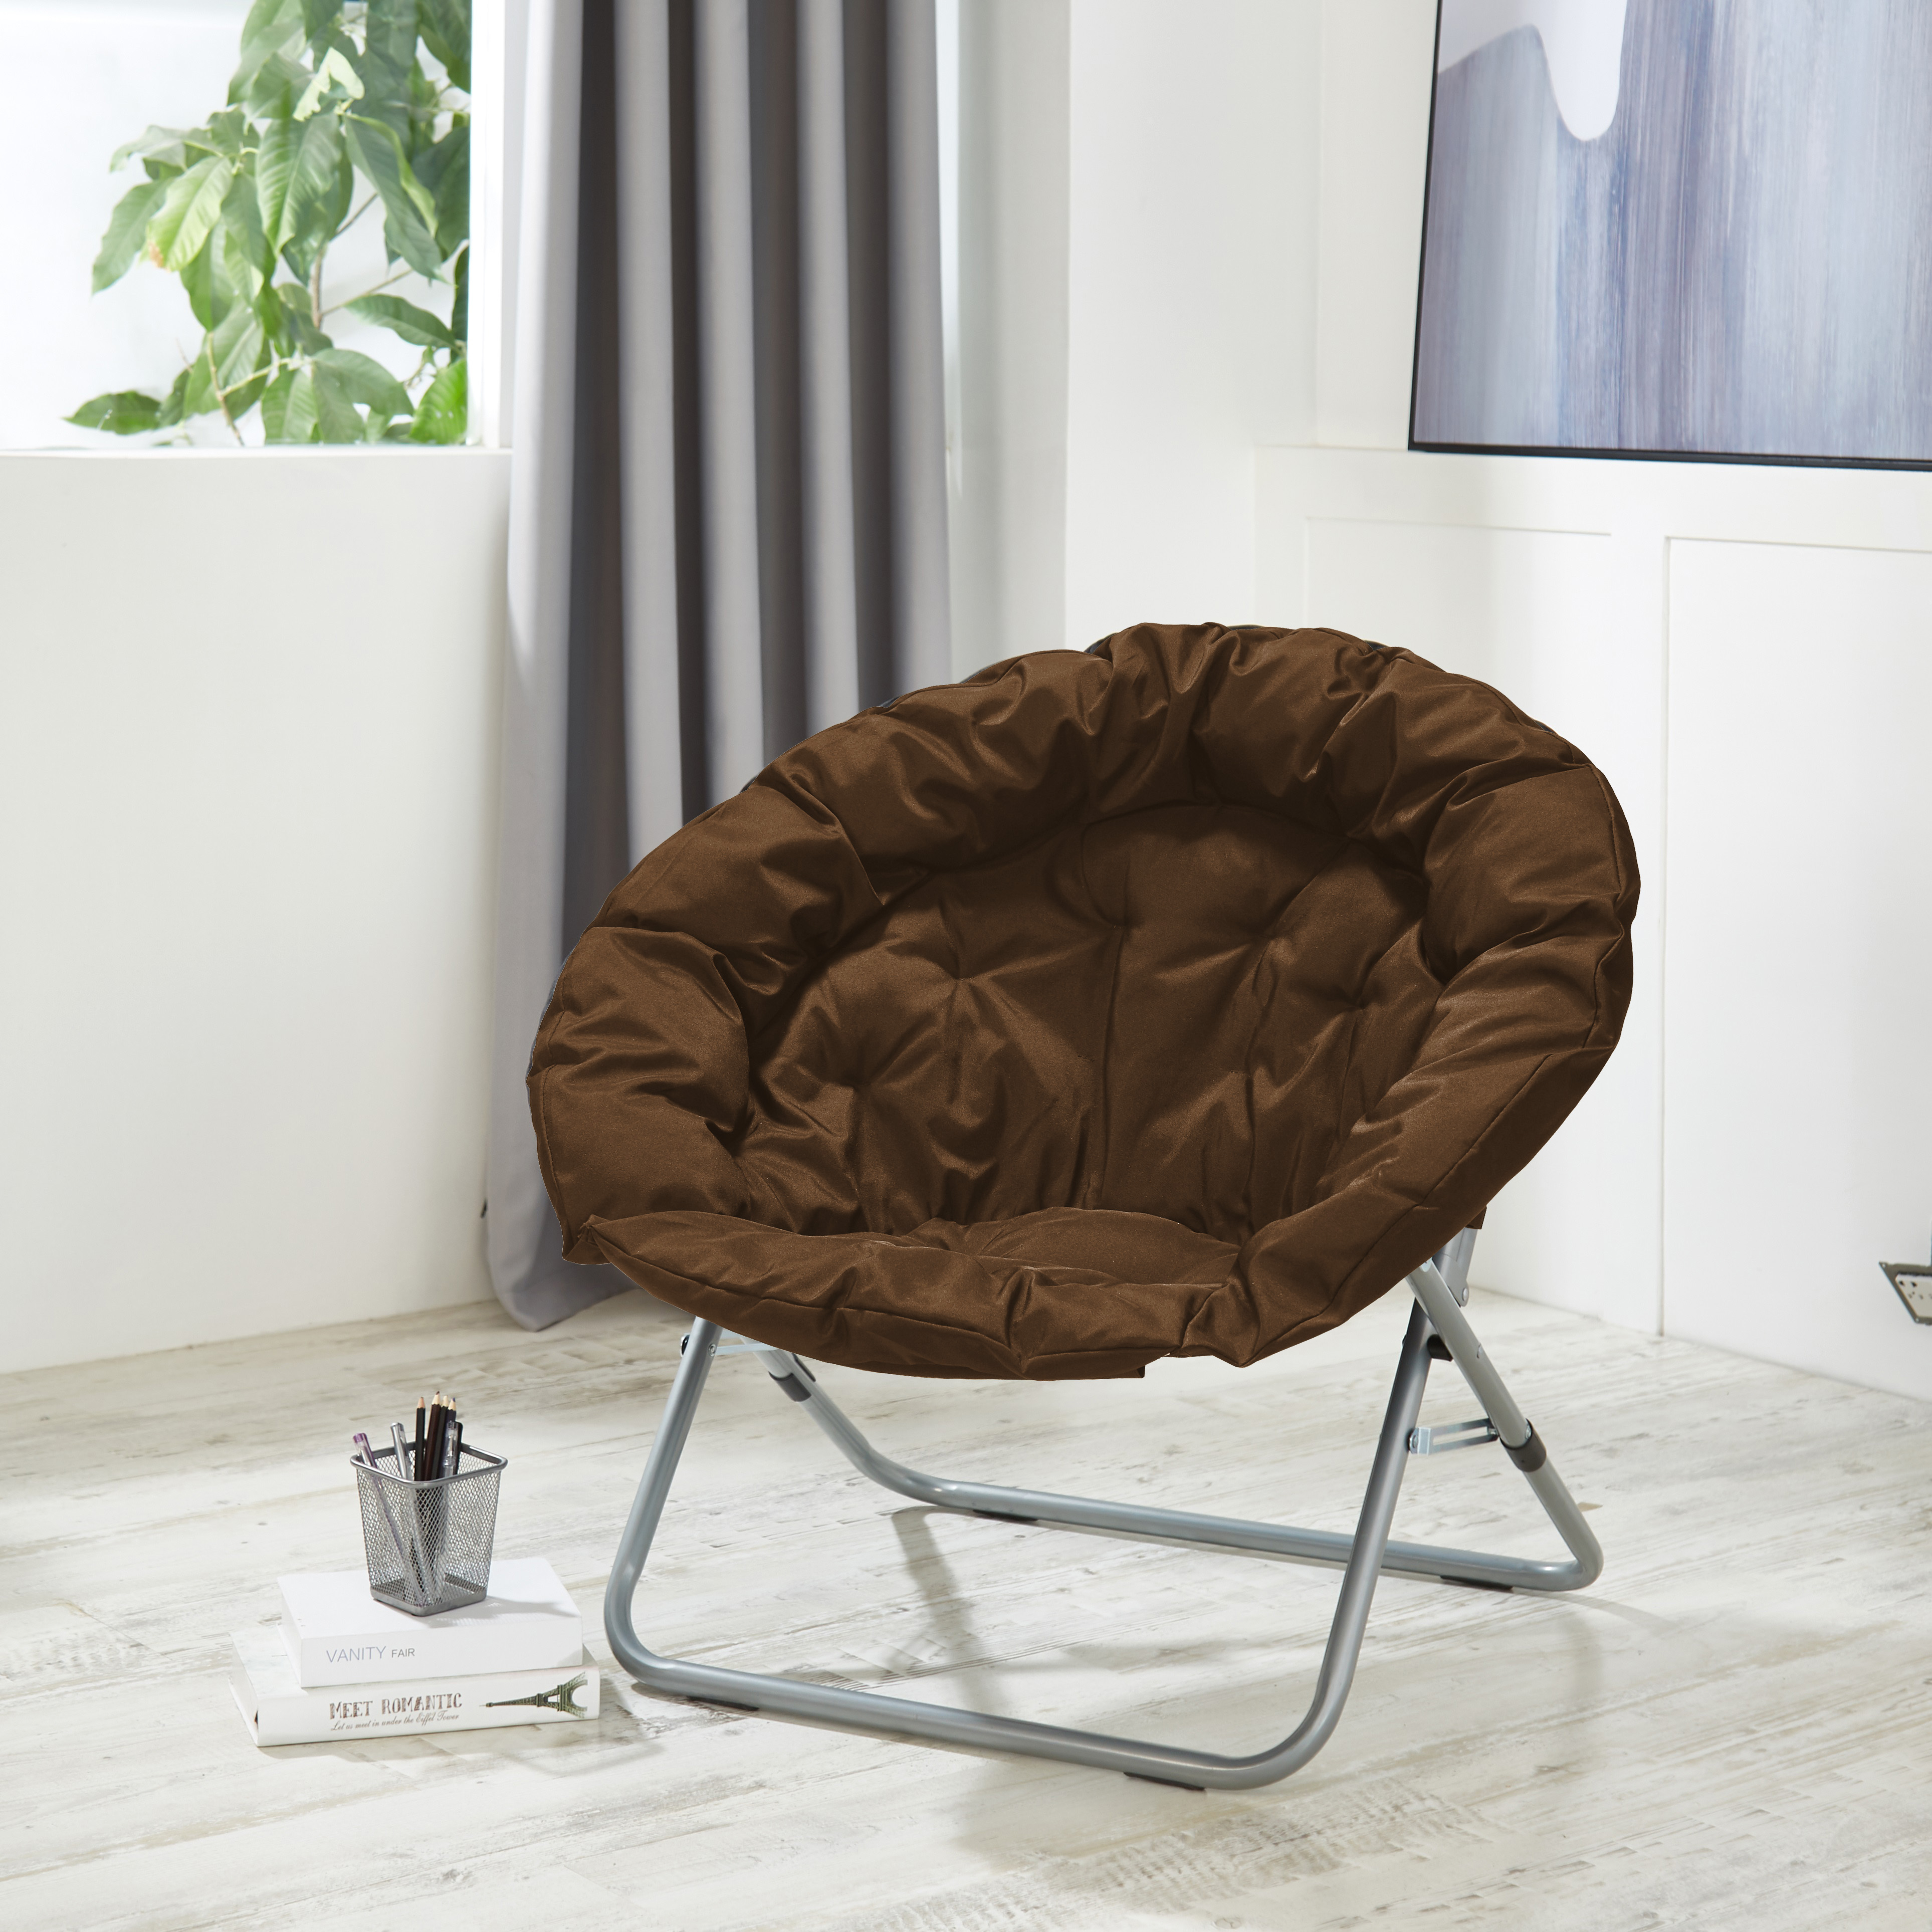 Urban Shop Oversized Moon Chair, Available in Multiple Colors